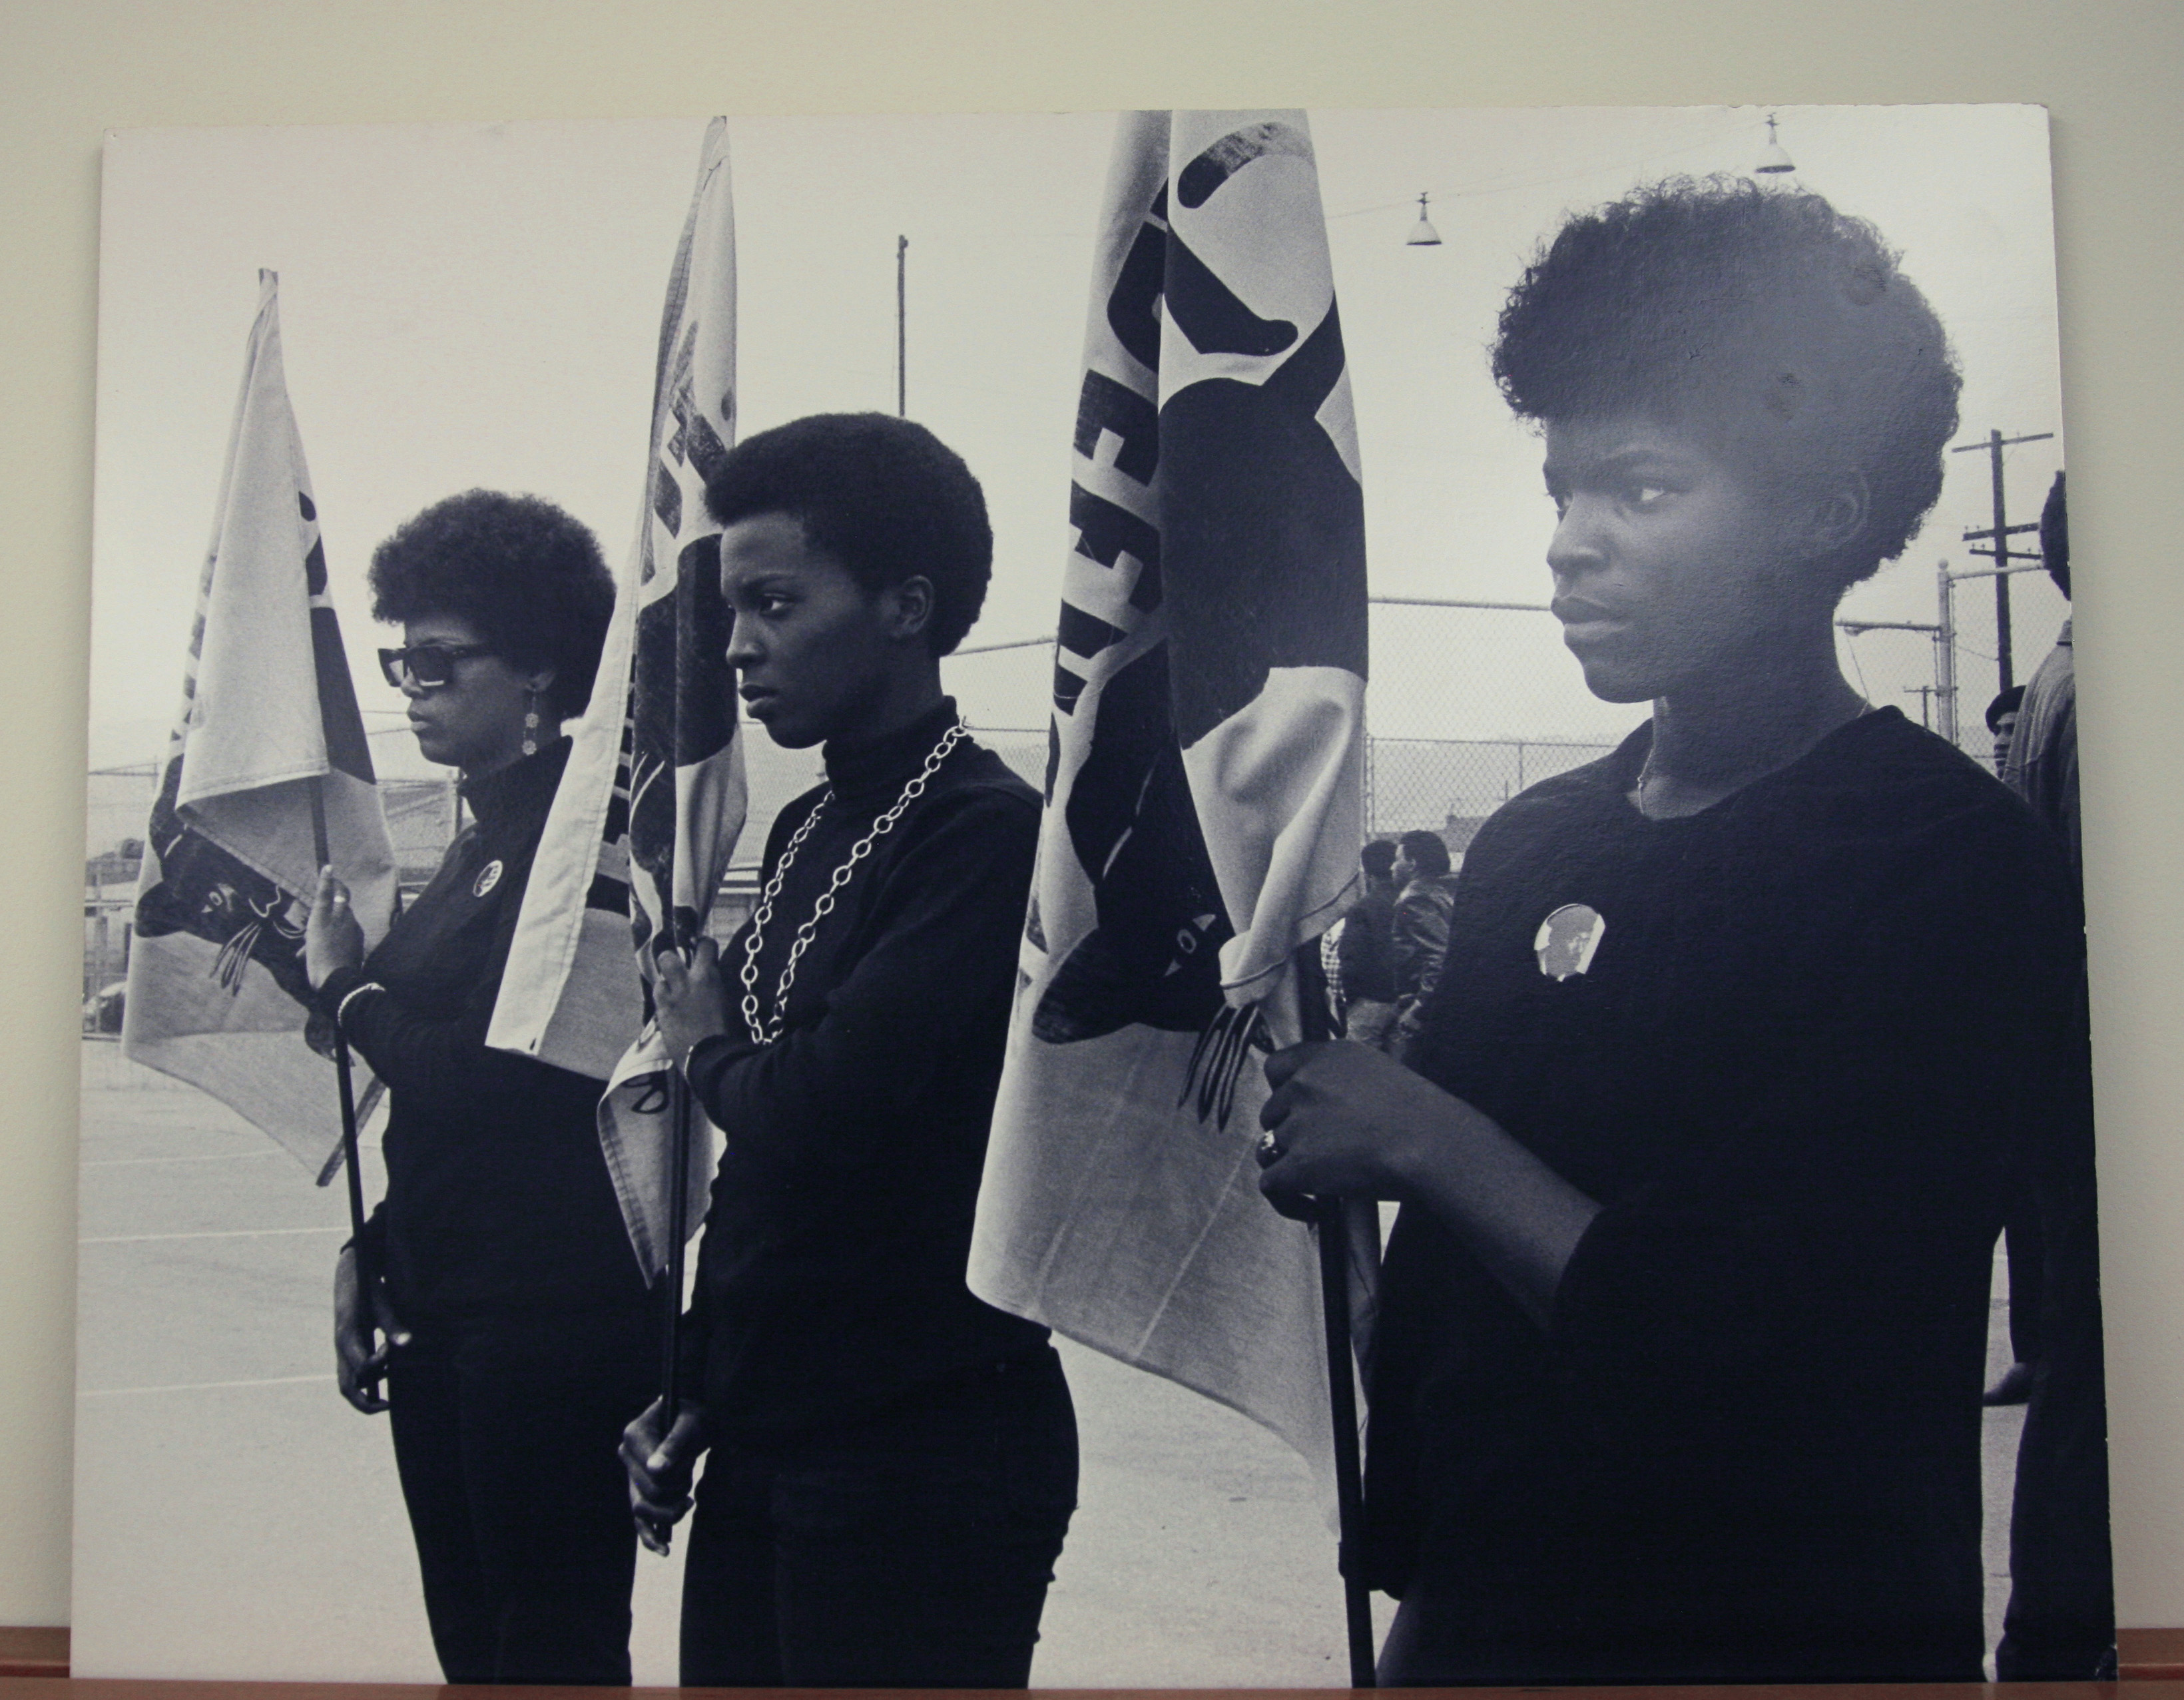 essay on the black panther party Essay on united states and black panther party his administration's domestic and foreign programs the united states presidential election of 1960 was the 44th.